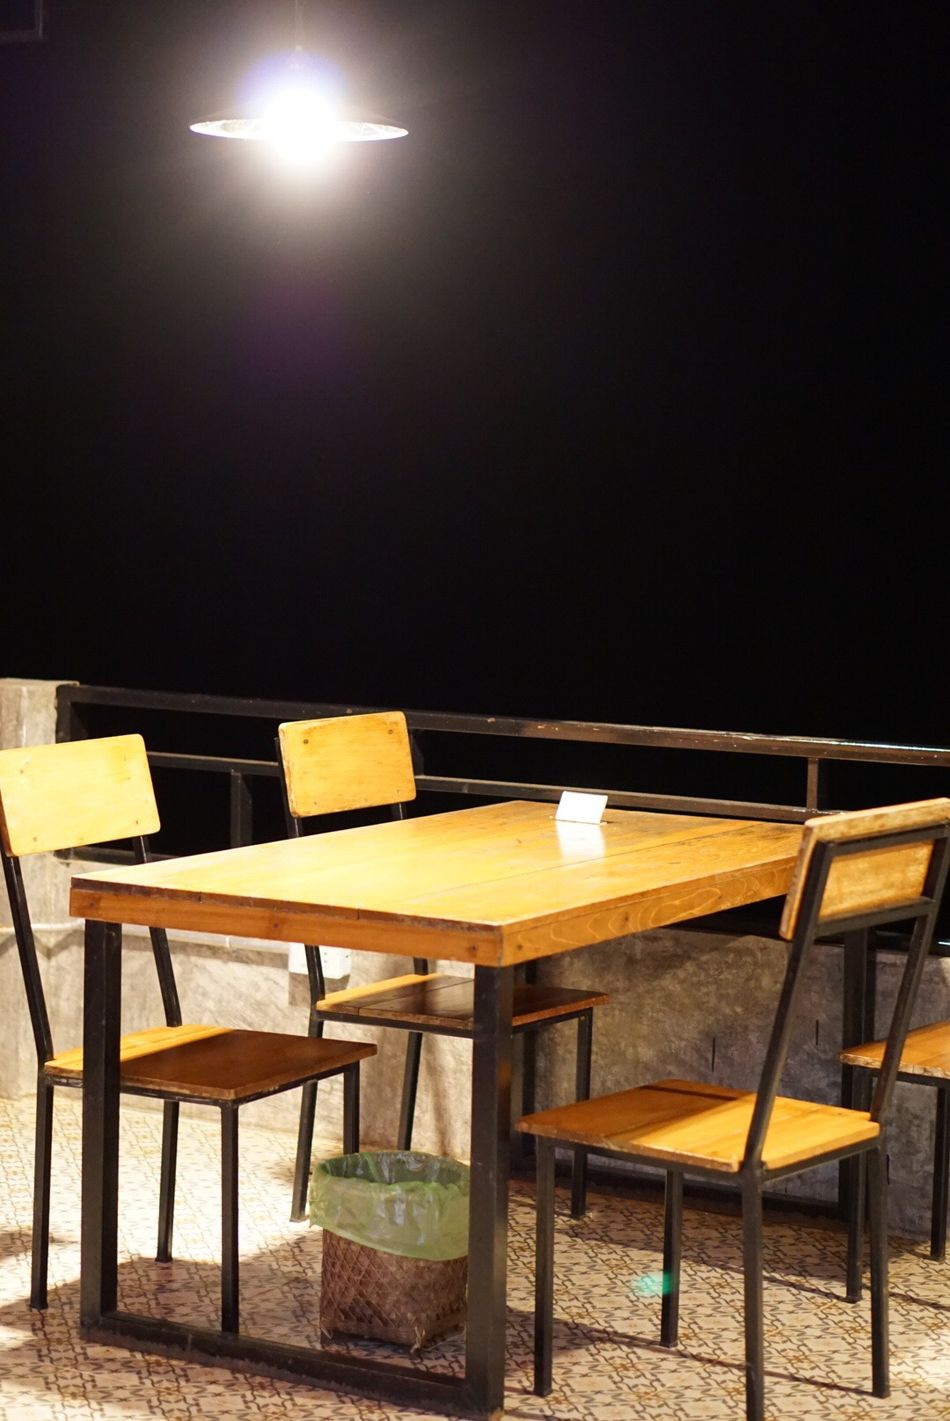 Chair Table No People Lighting Equipment Wood - Material Illuminated Indoors  Seat Auditorium Day Dinner Chiangrai Goodtime